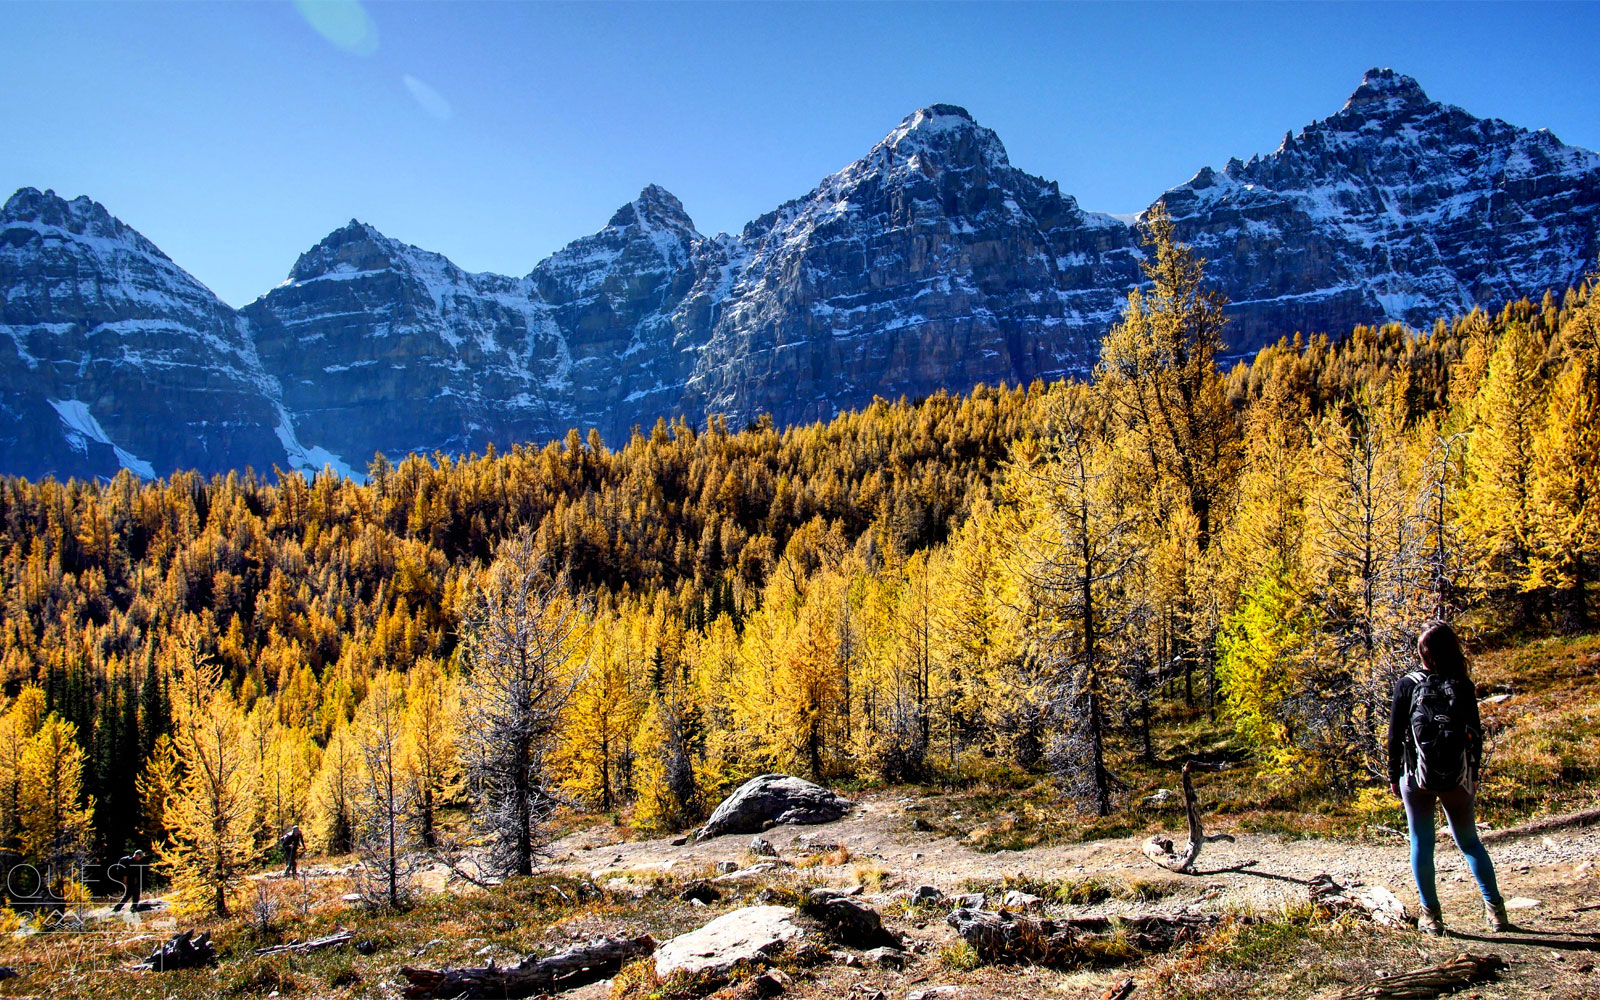 In the fall, Banff National park's Larch Valley is adorned with mesmerizing foliage.                               The larch trees' needles turn a bright gold for a few weeks each year, attracting thousands of tourists. Larch Valley, found through a trail above Moraine Lake, is further enhanced by its striking backdrop of white glaciers and towering peaks.